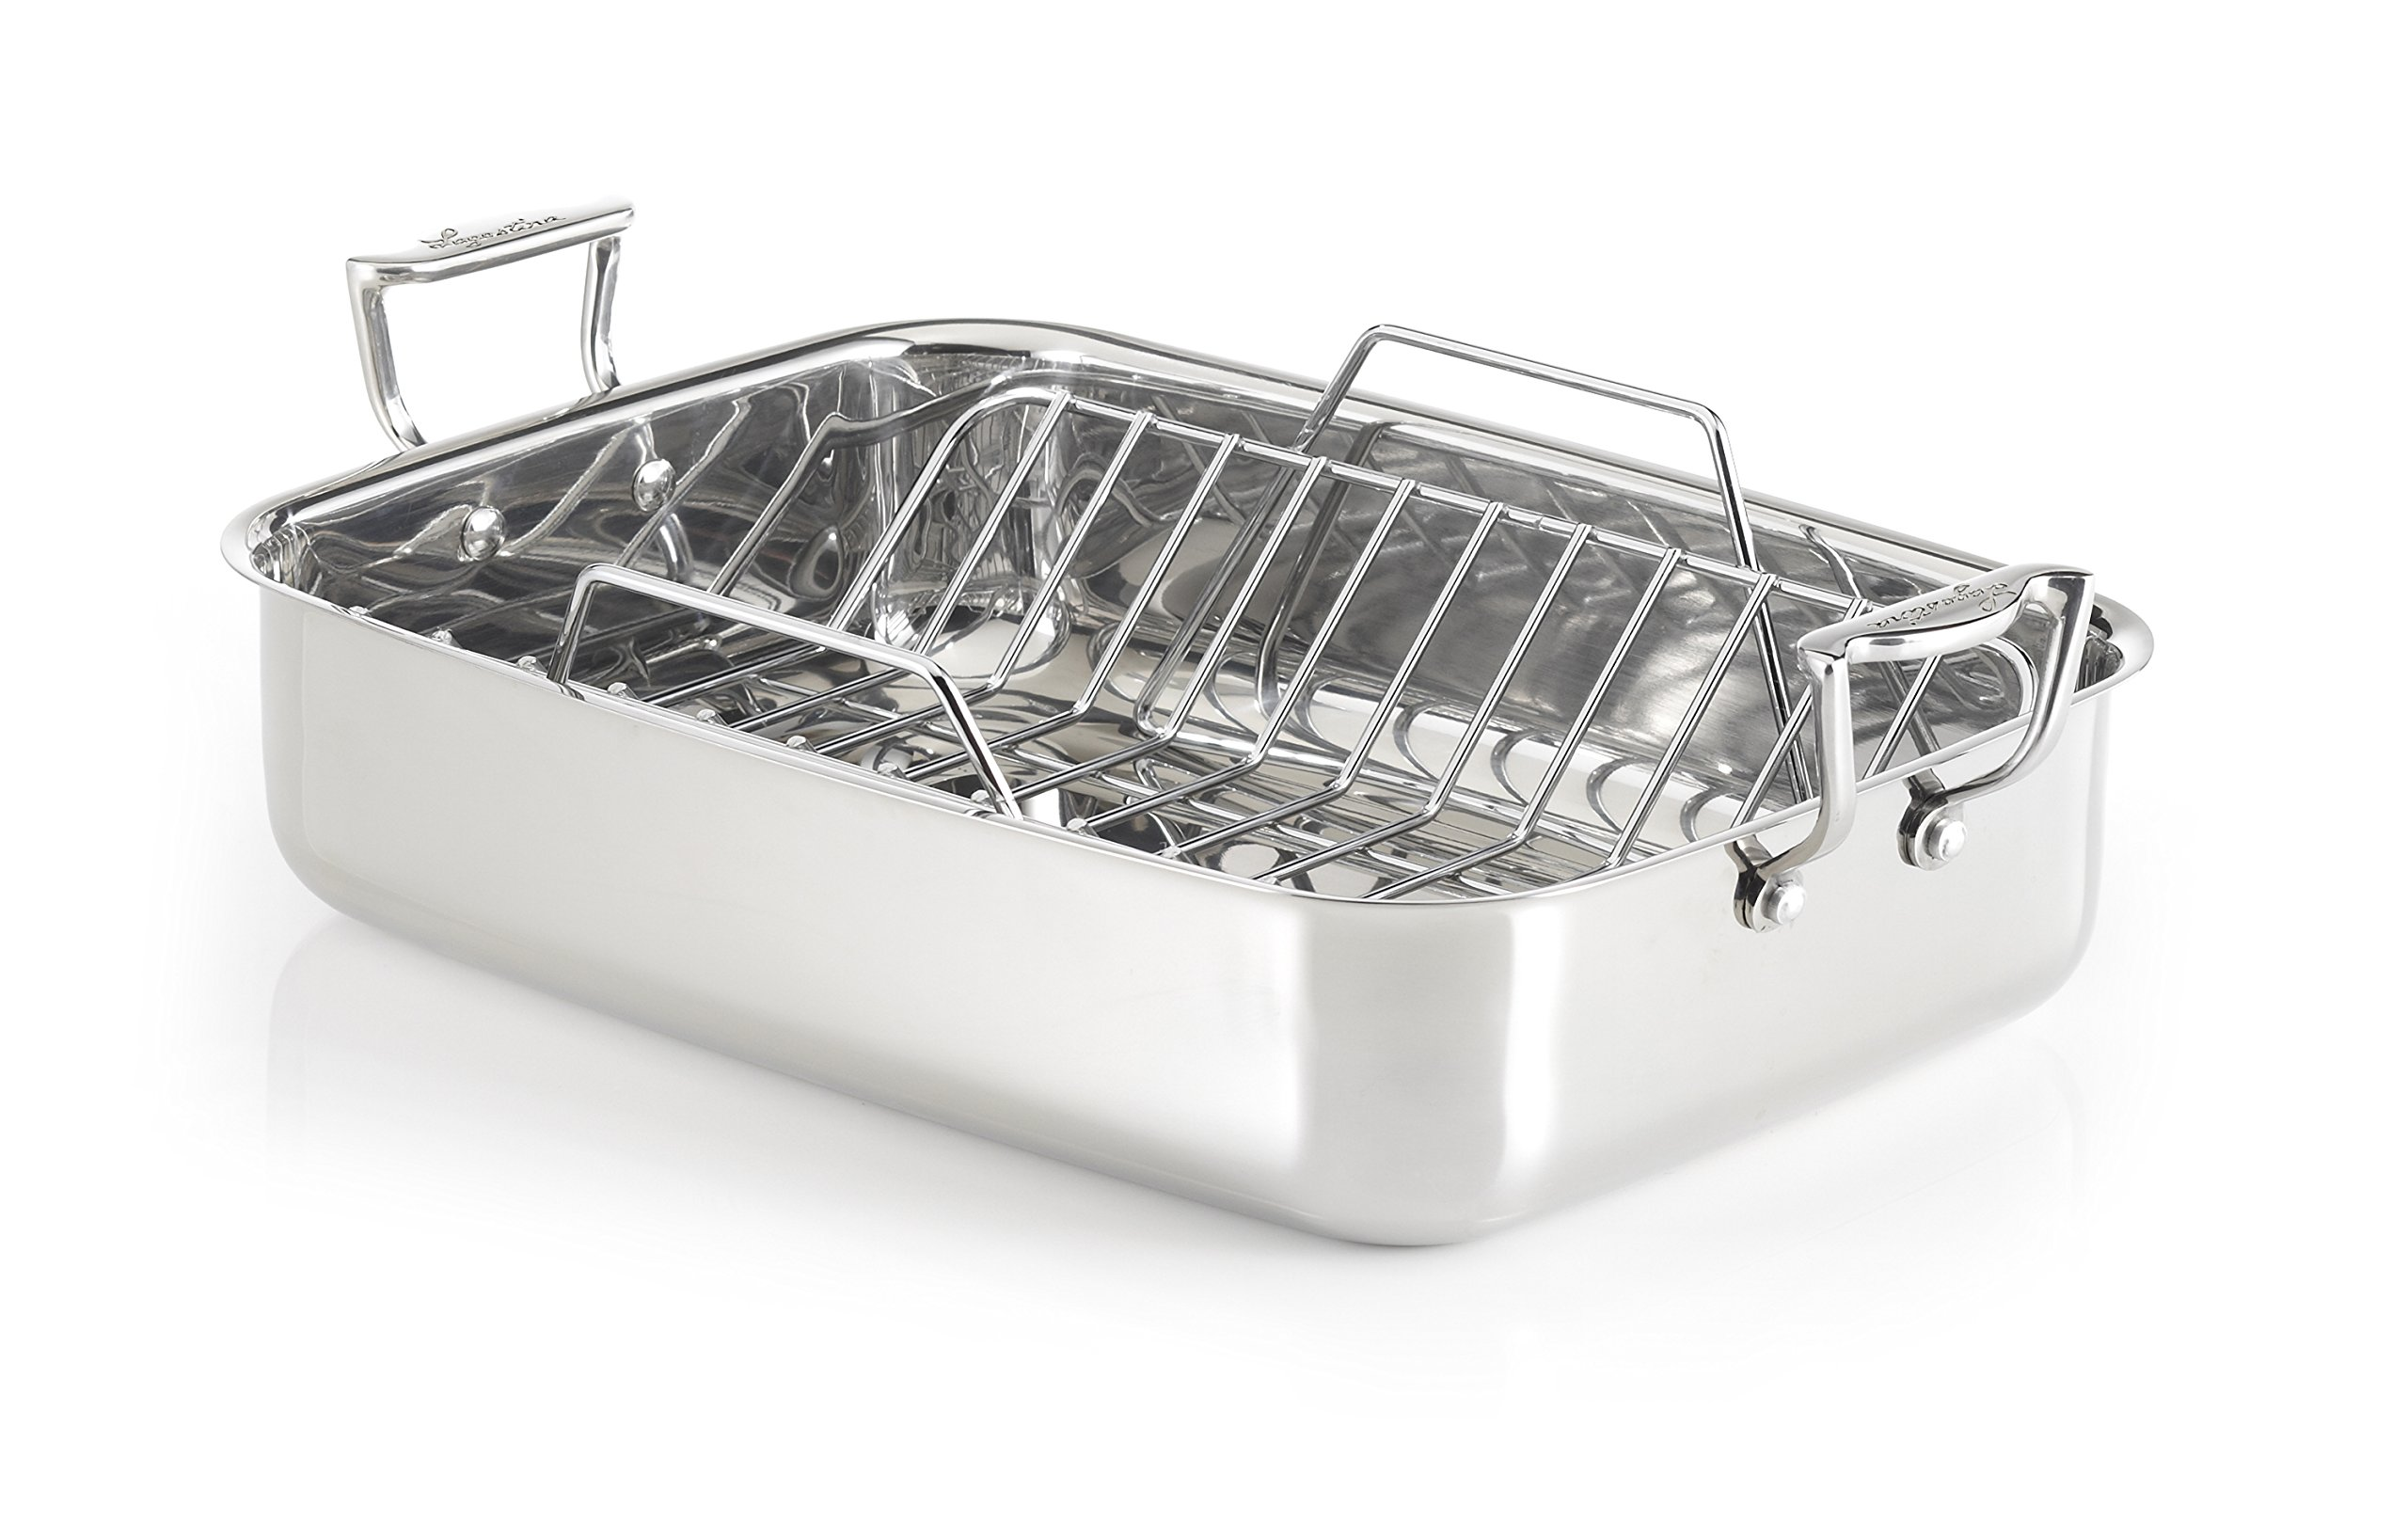 Lagostina T9910164 Stainless Steel 16-Inch Rectangular Roasting Pan Chicken Roaster with Rack Cookware, Silver